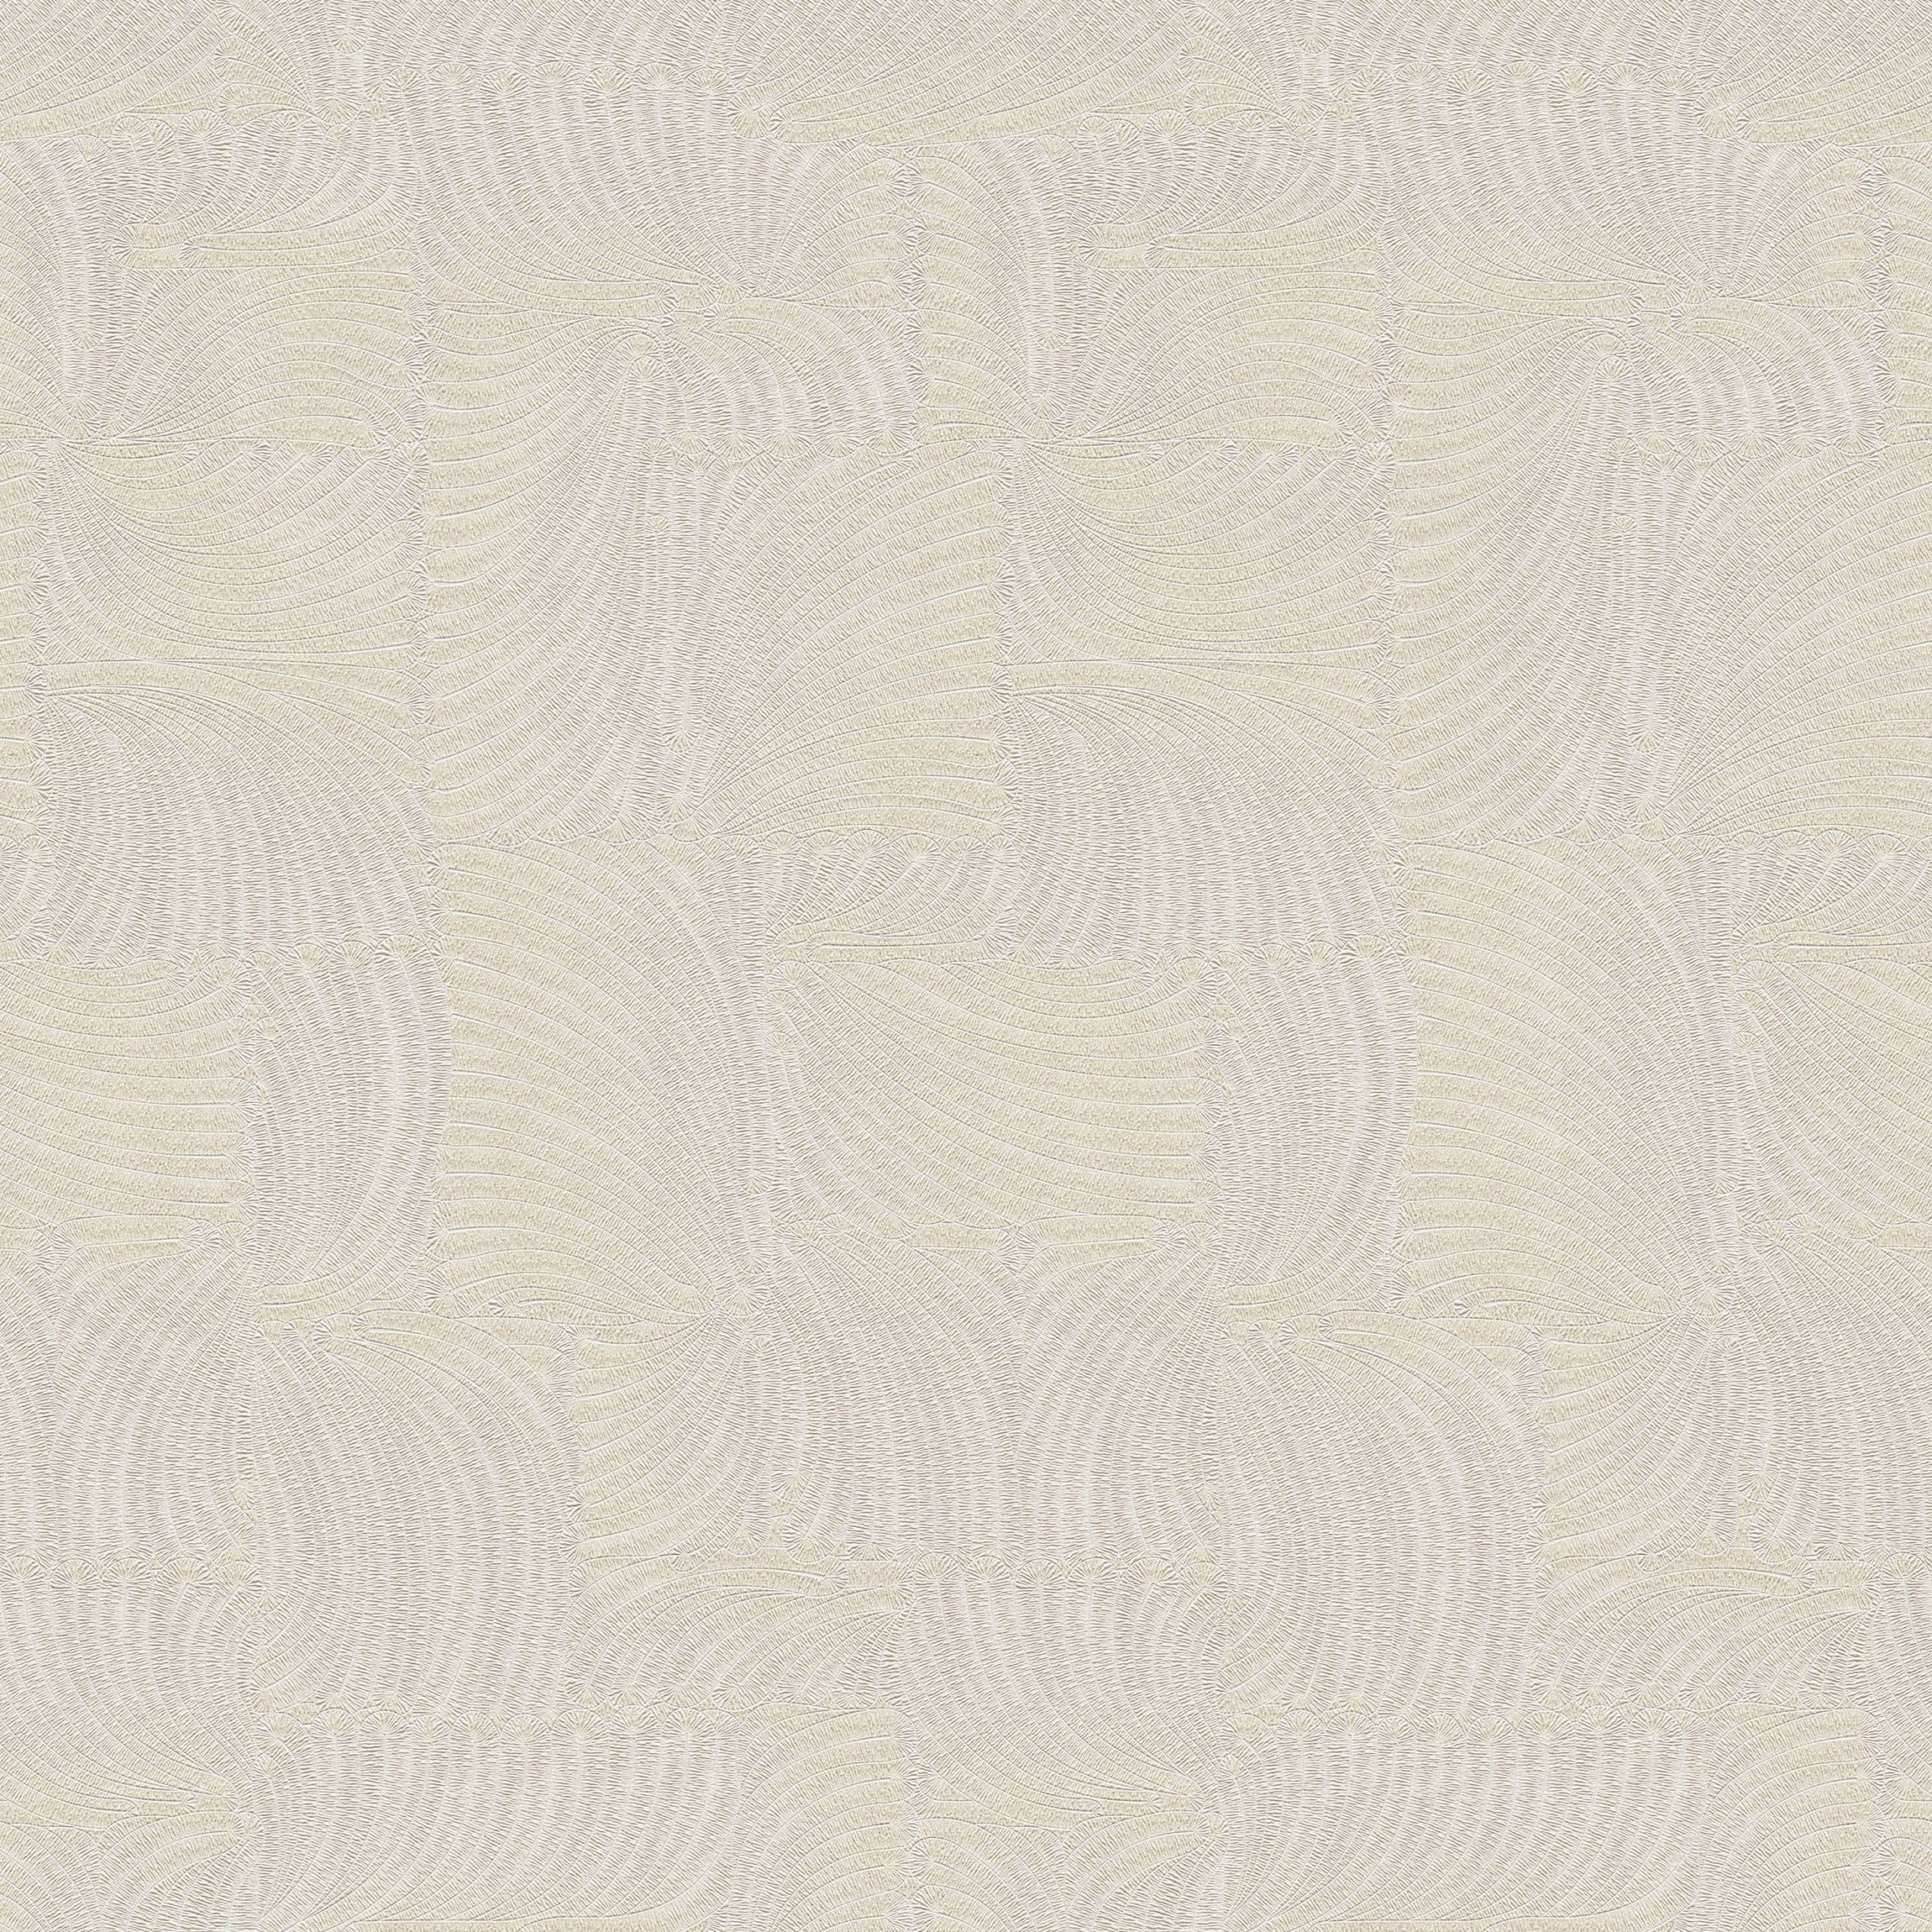 Tapetti Fashion for Walls II V 02480 - 40, 0.53x10.05 m, beige, non-woven